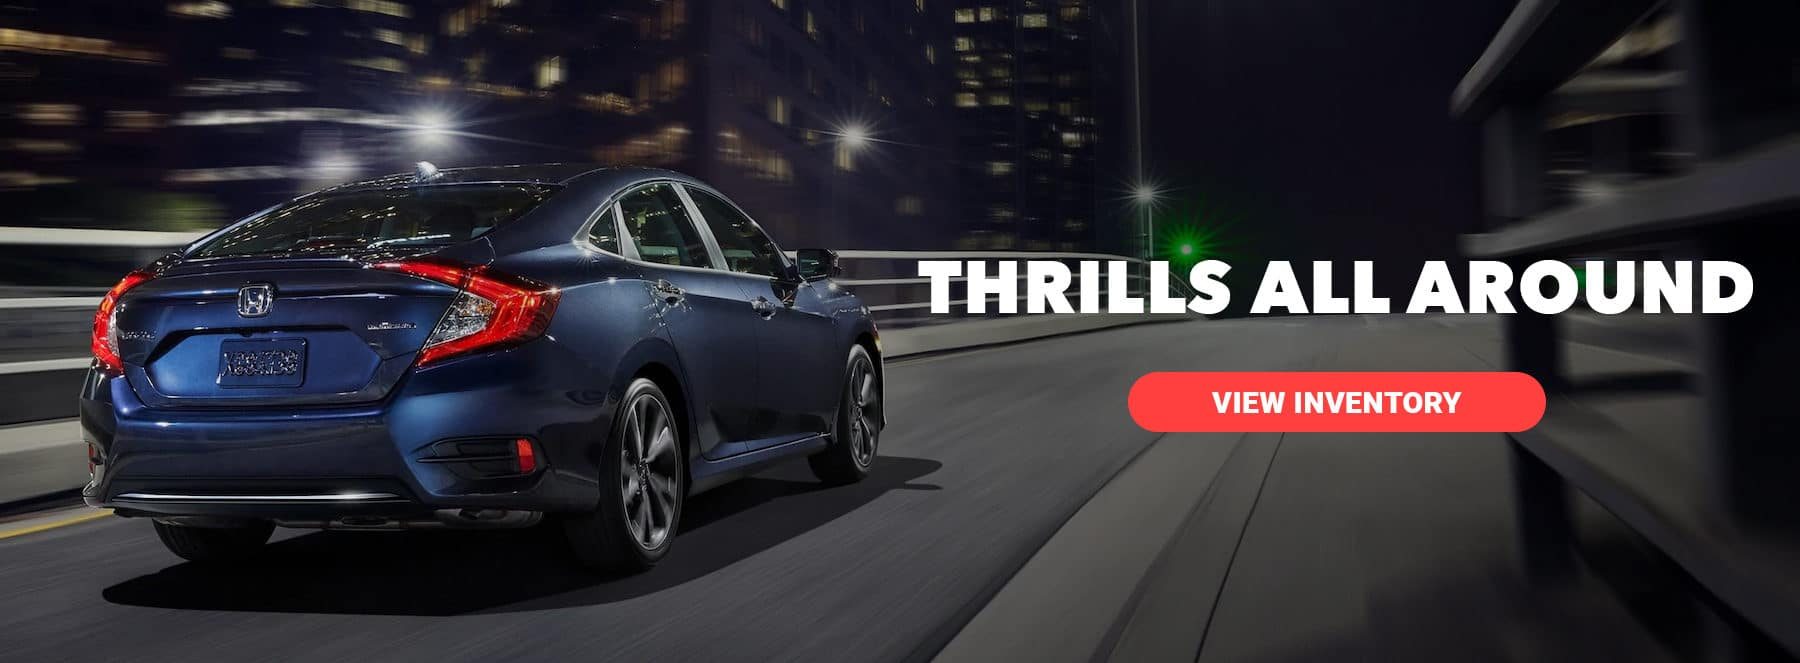 Civic_ThrillsAllAround_1800x663